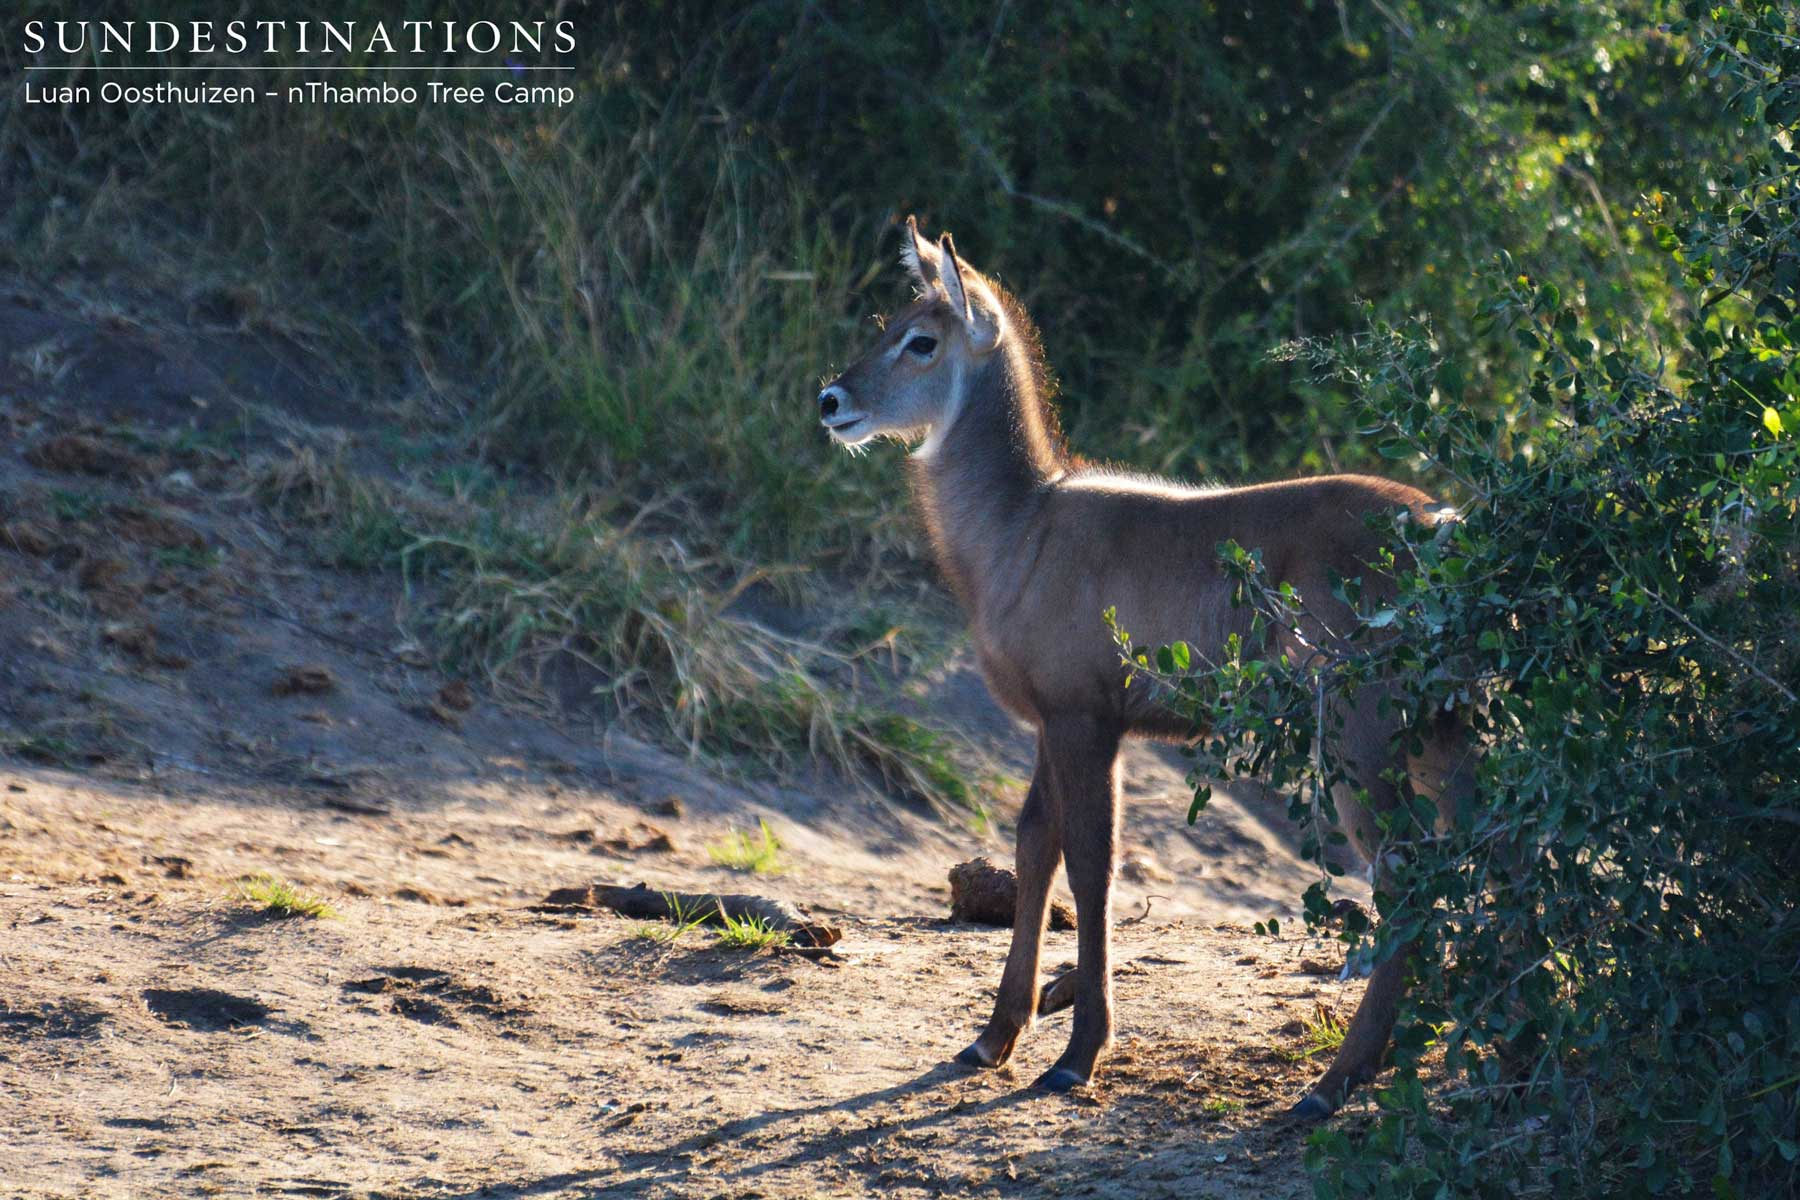 Young Waterbuck Calf nThambo